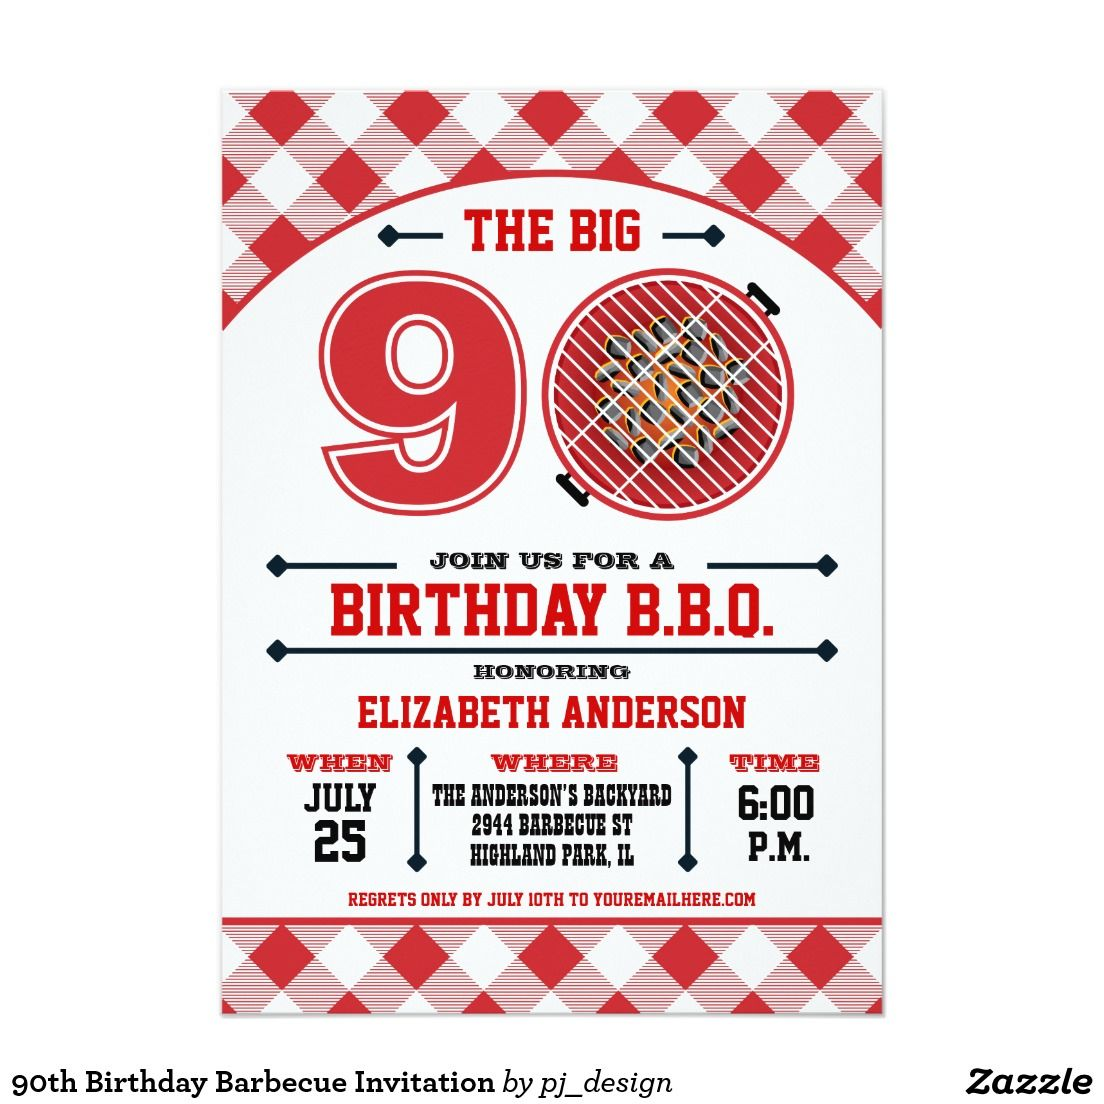 90th Birthday Barbecue Invitation | Daddy\'s 90th BD party ...